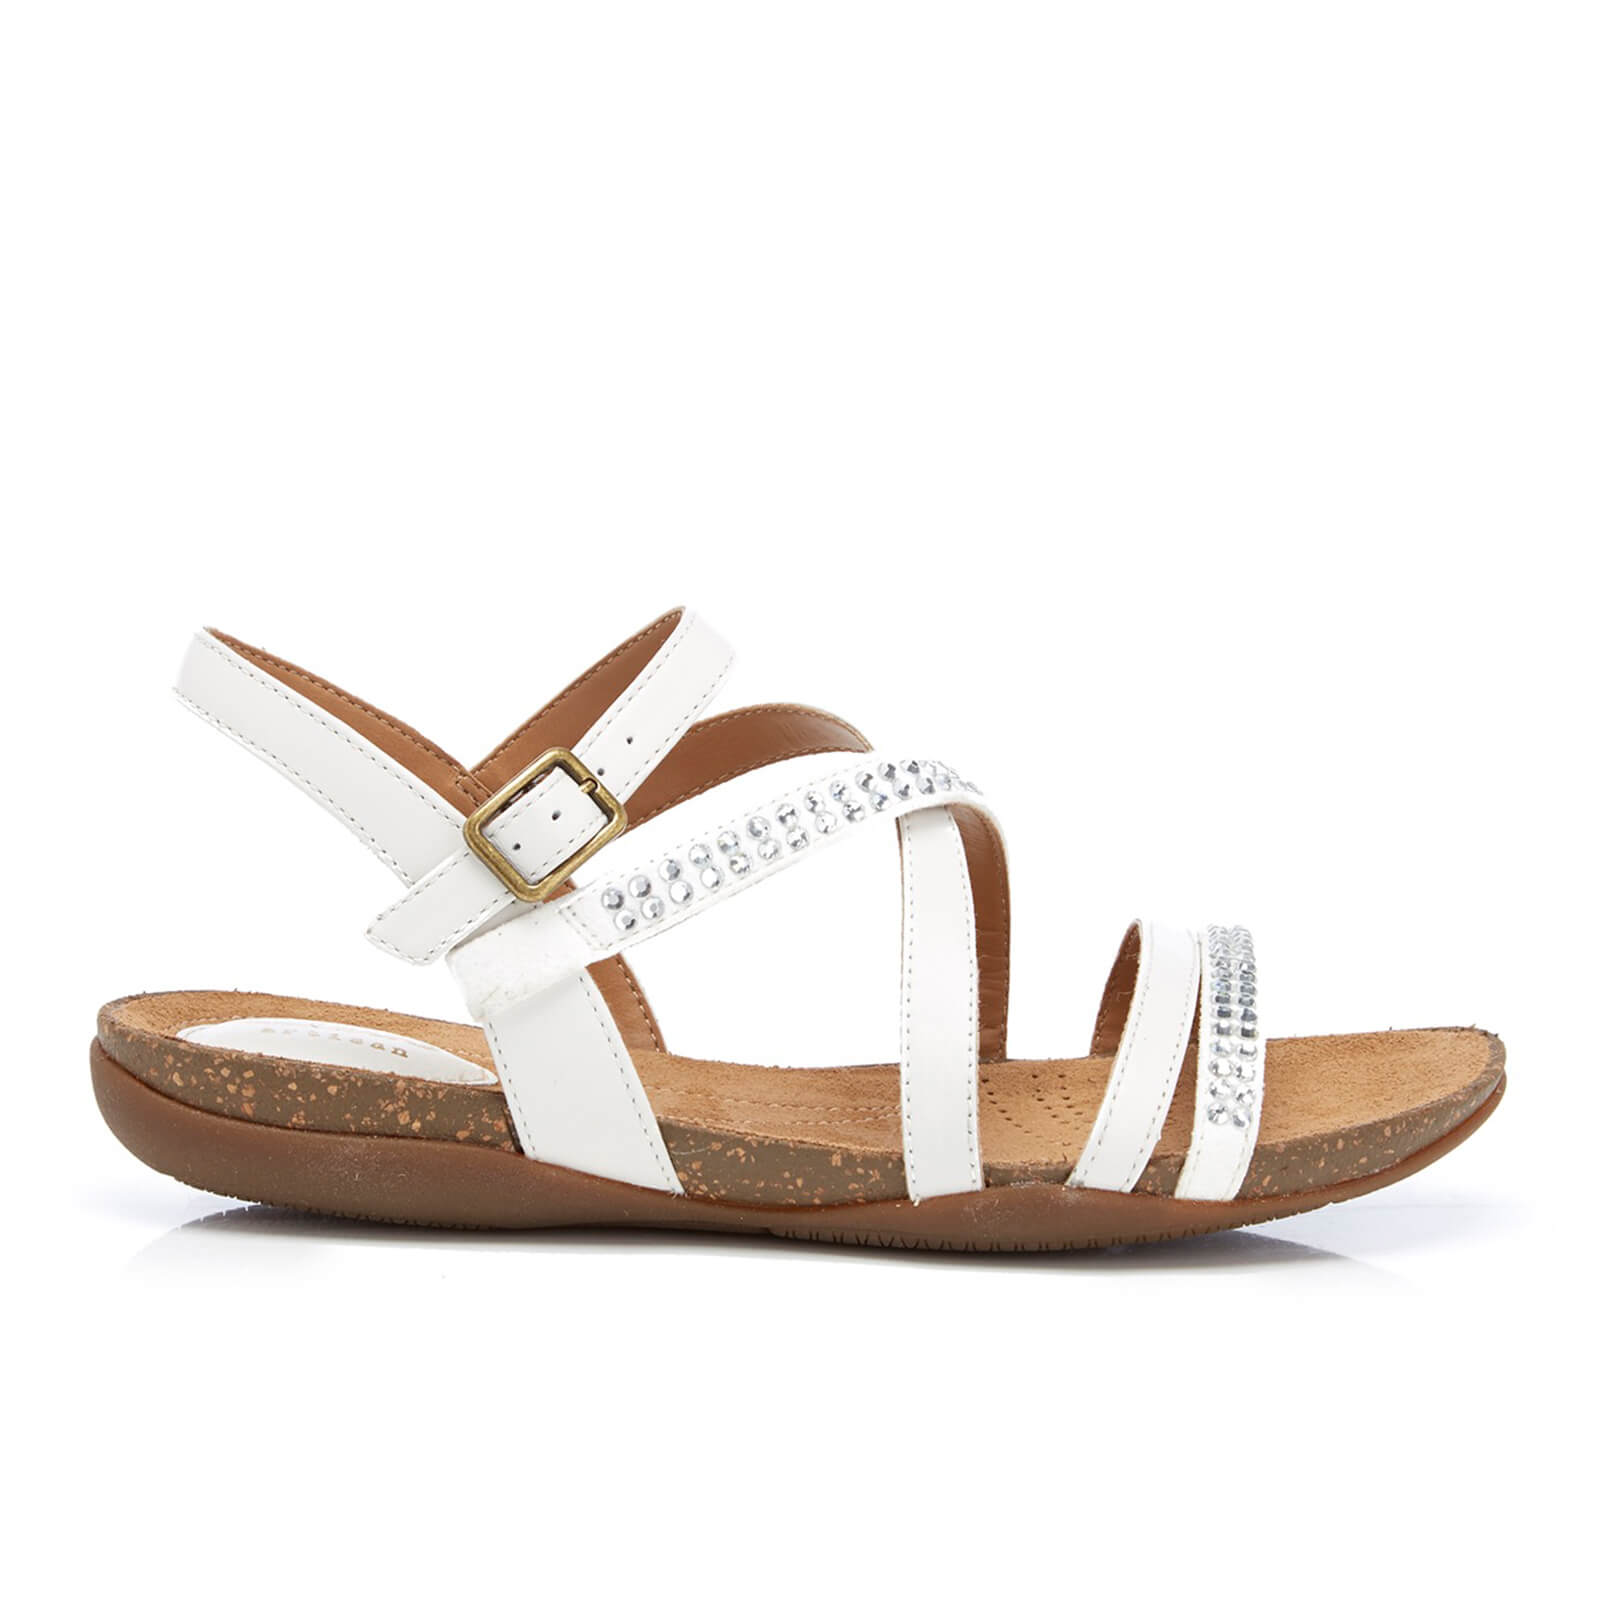 bf1f159882b97 Clarks Women's Autumn Peace Leather Strappy Sandals - White | FREE UK  Delivery | Allsole